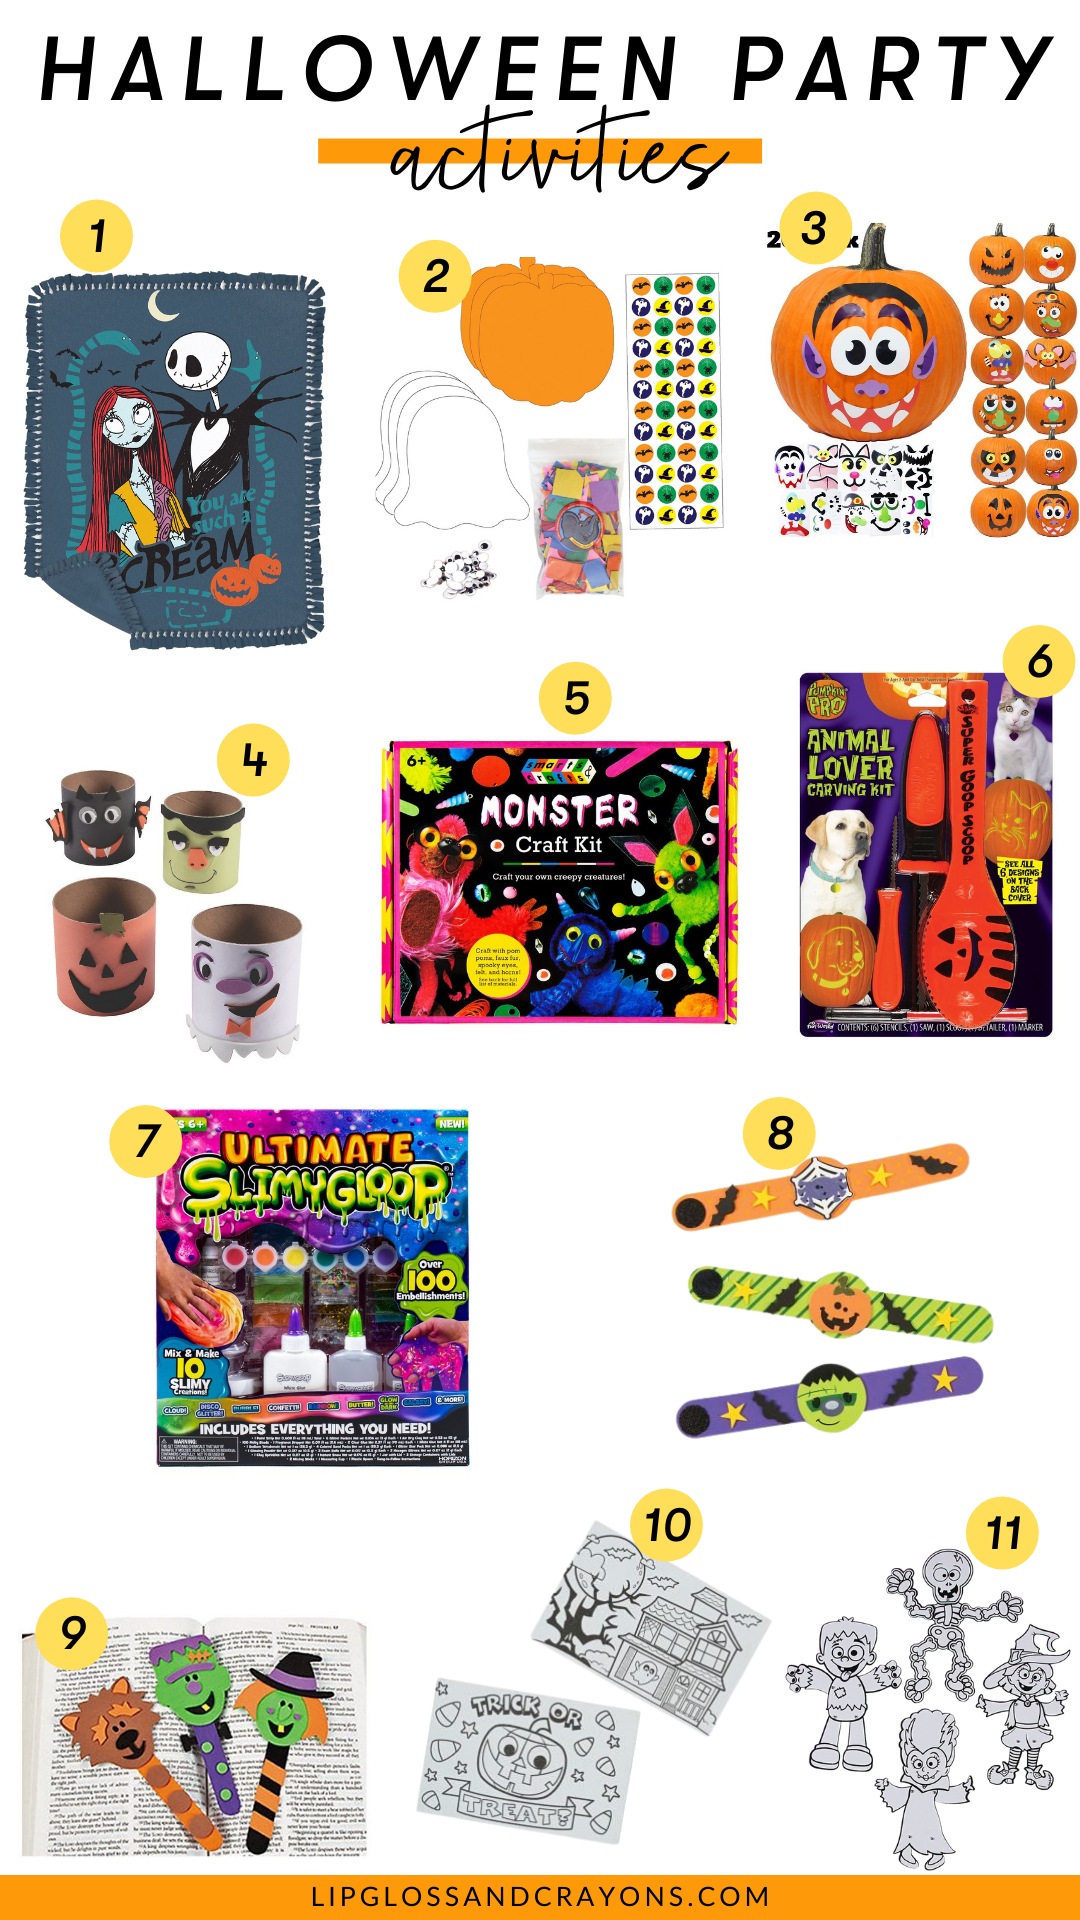 Looking for Halloween party activities for the classroom or home? These Halloween crafts for kids and Halloween Games ideas are perfect for spooky festivities!